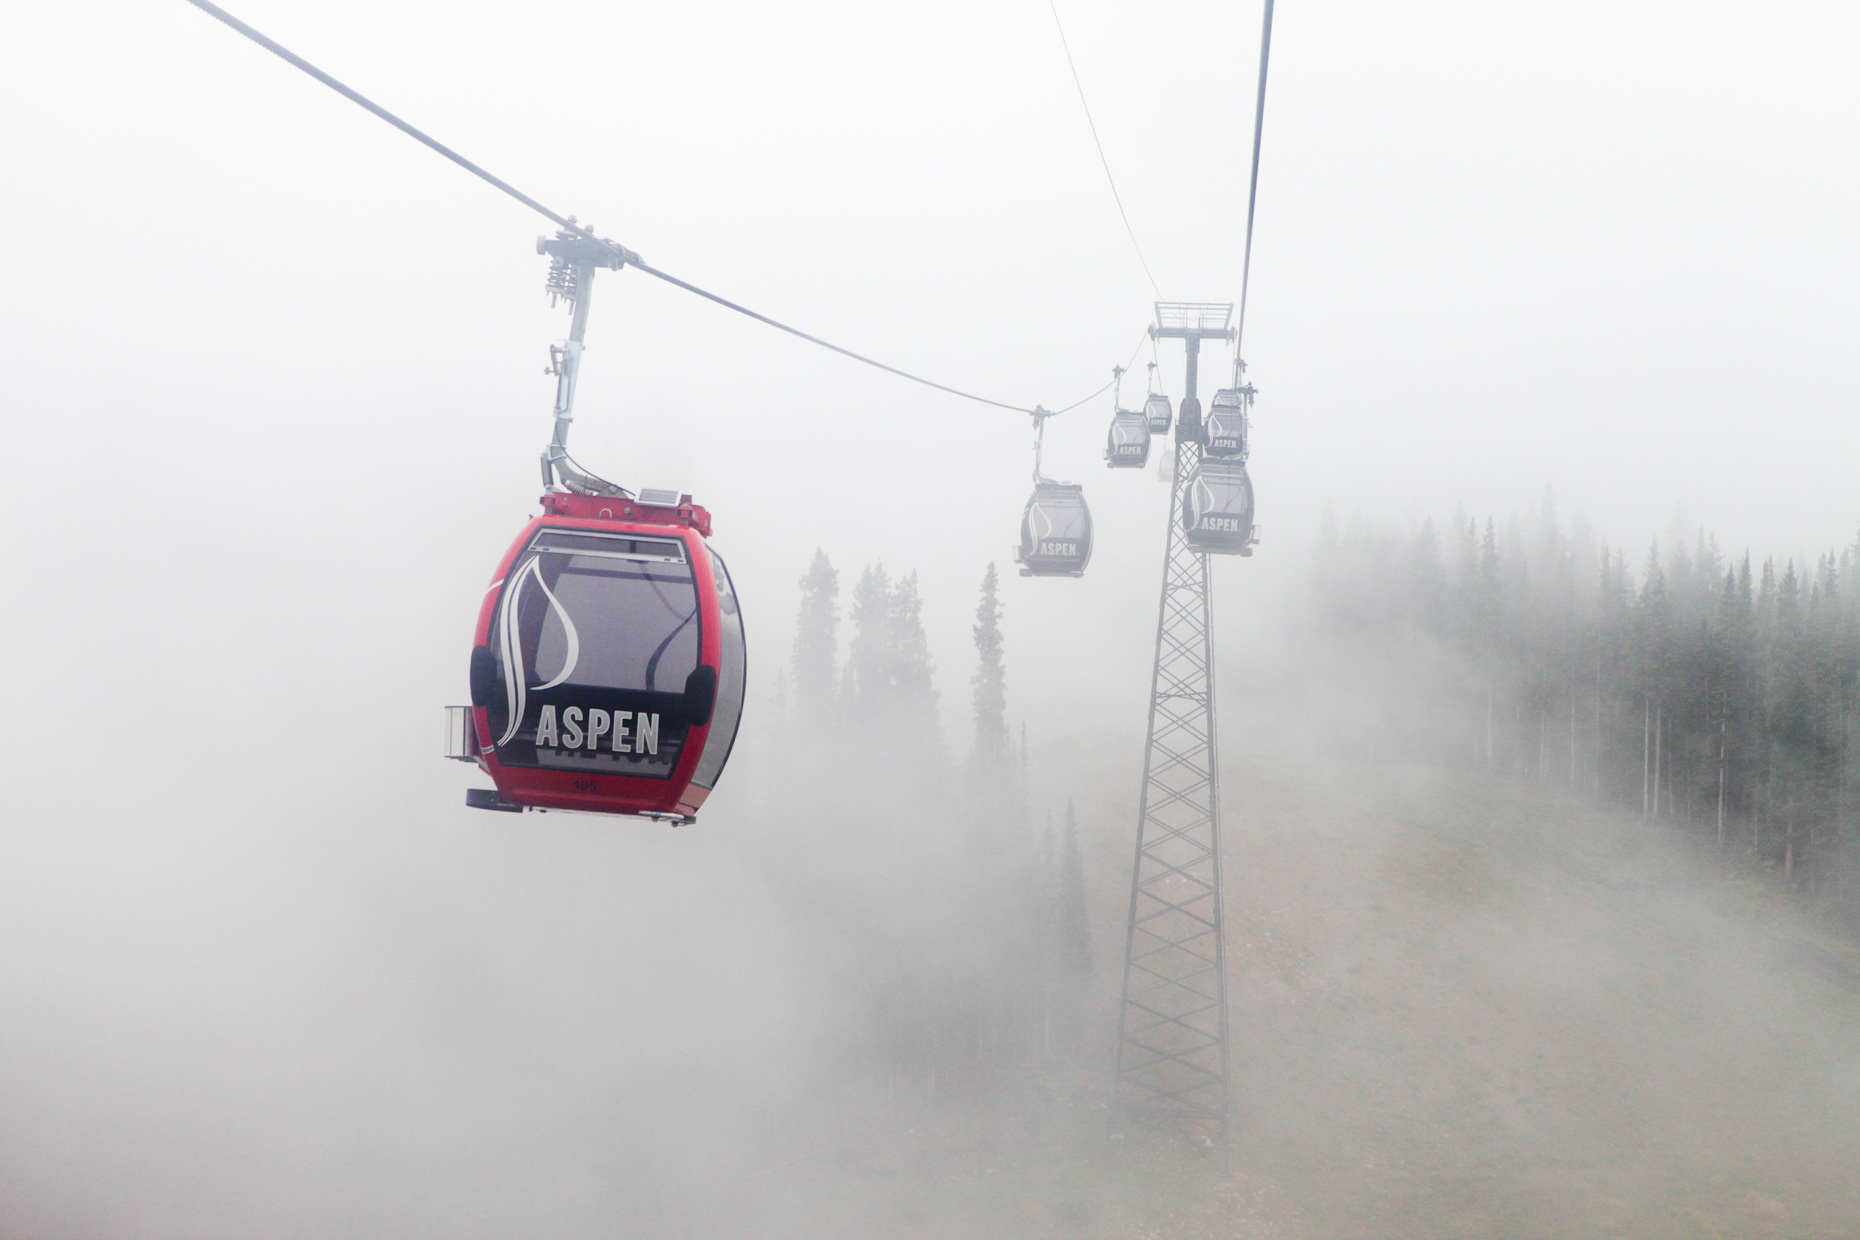 Aspen_Gondola_Ajax_Mountain.JPG